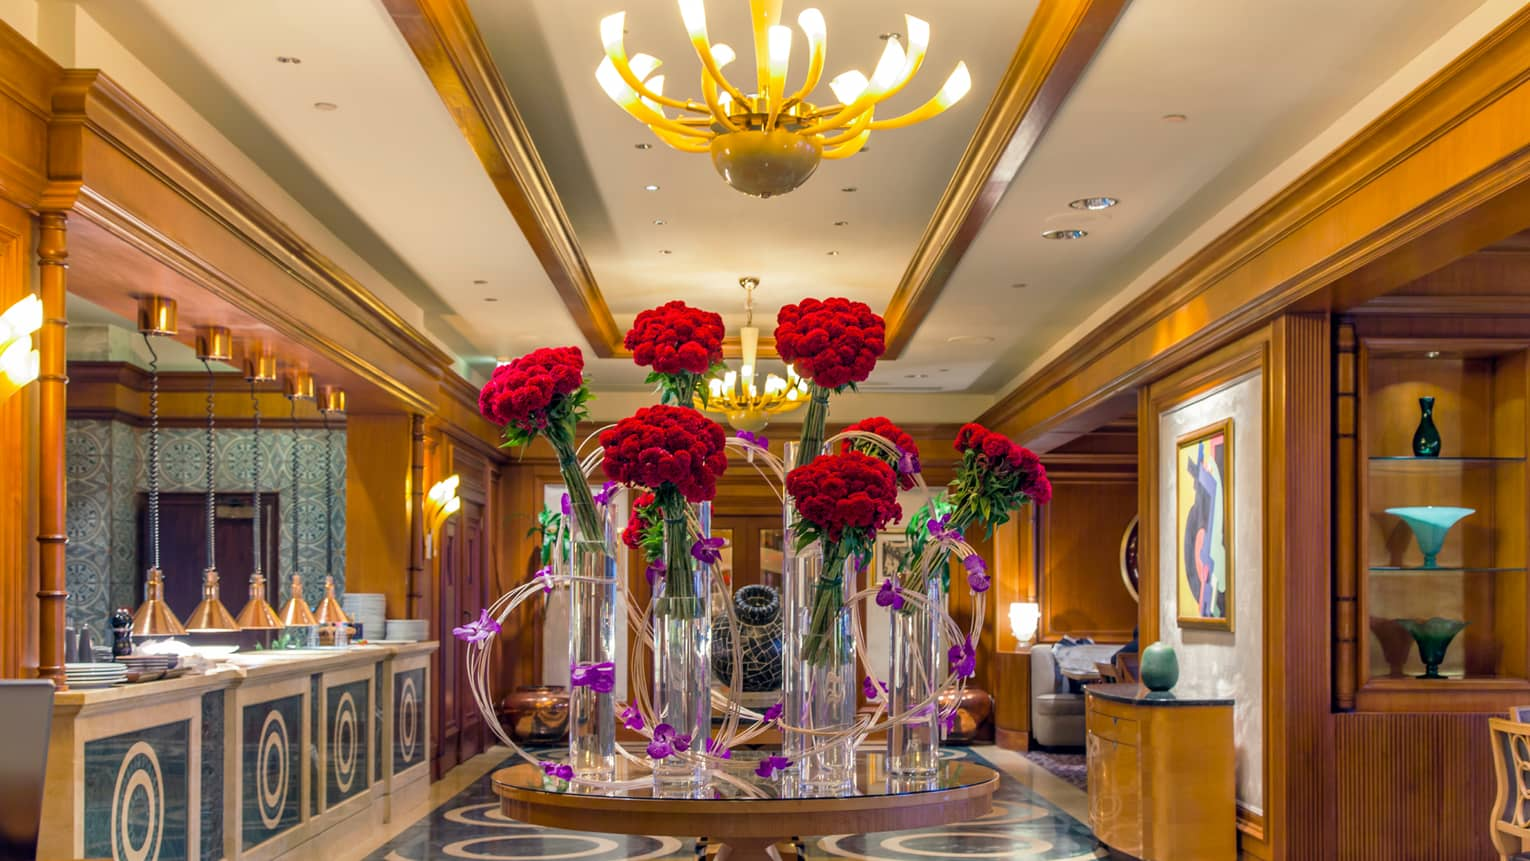 Bella Restaurant marble and wood hallway with table displaying six modern glass vases with red flowers